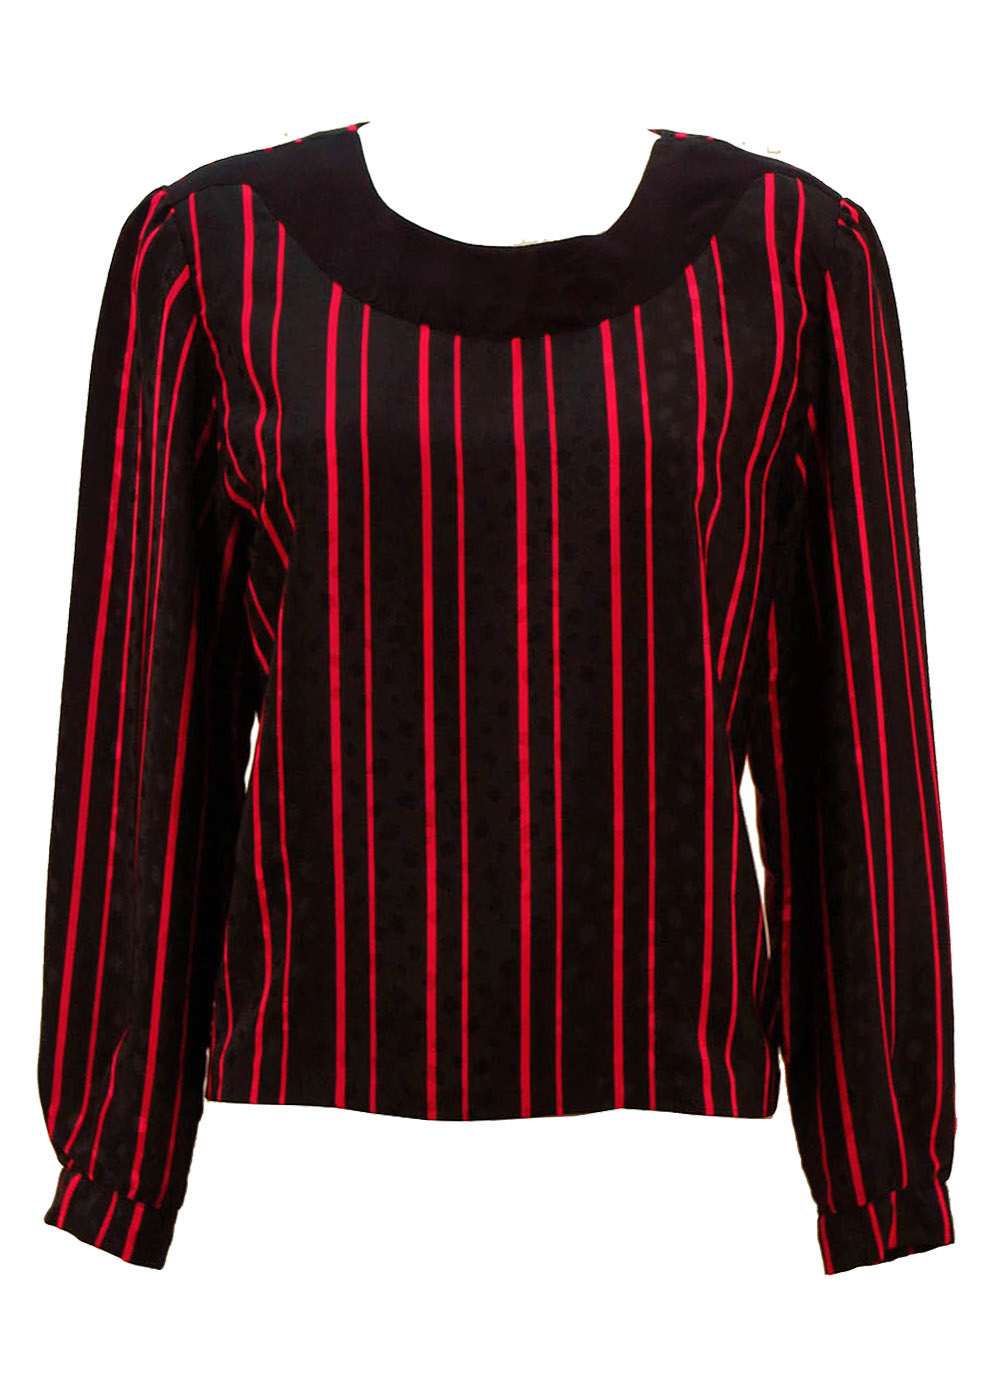 competitive price best website more photos Vintage 80's Silky Black & Pink Striped Top - M/L